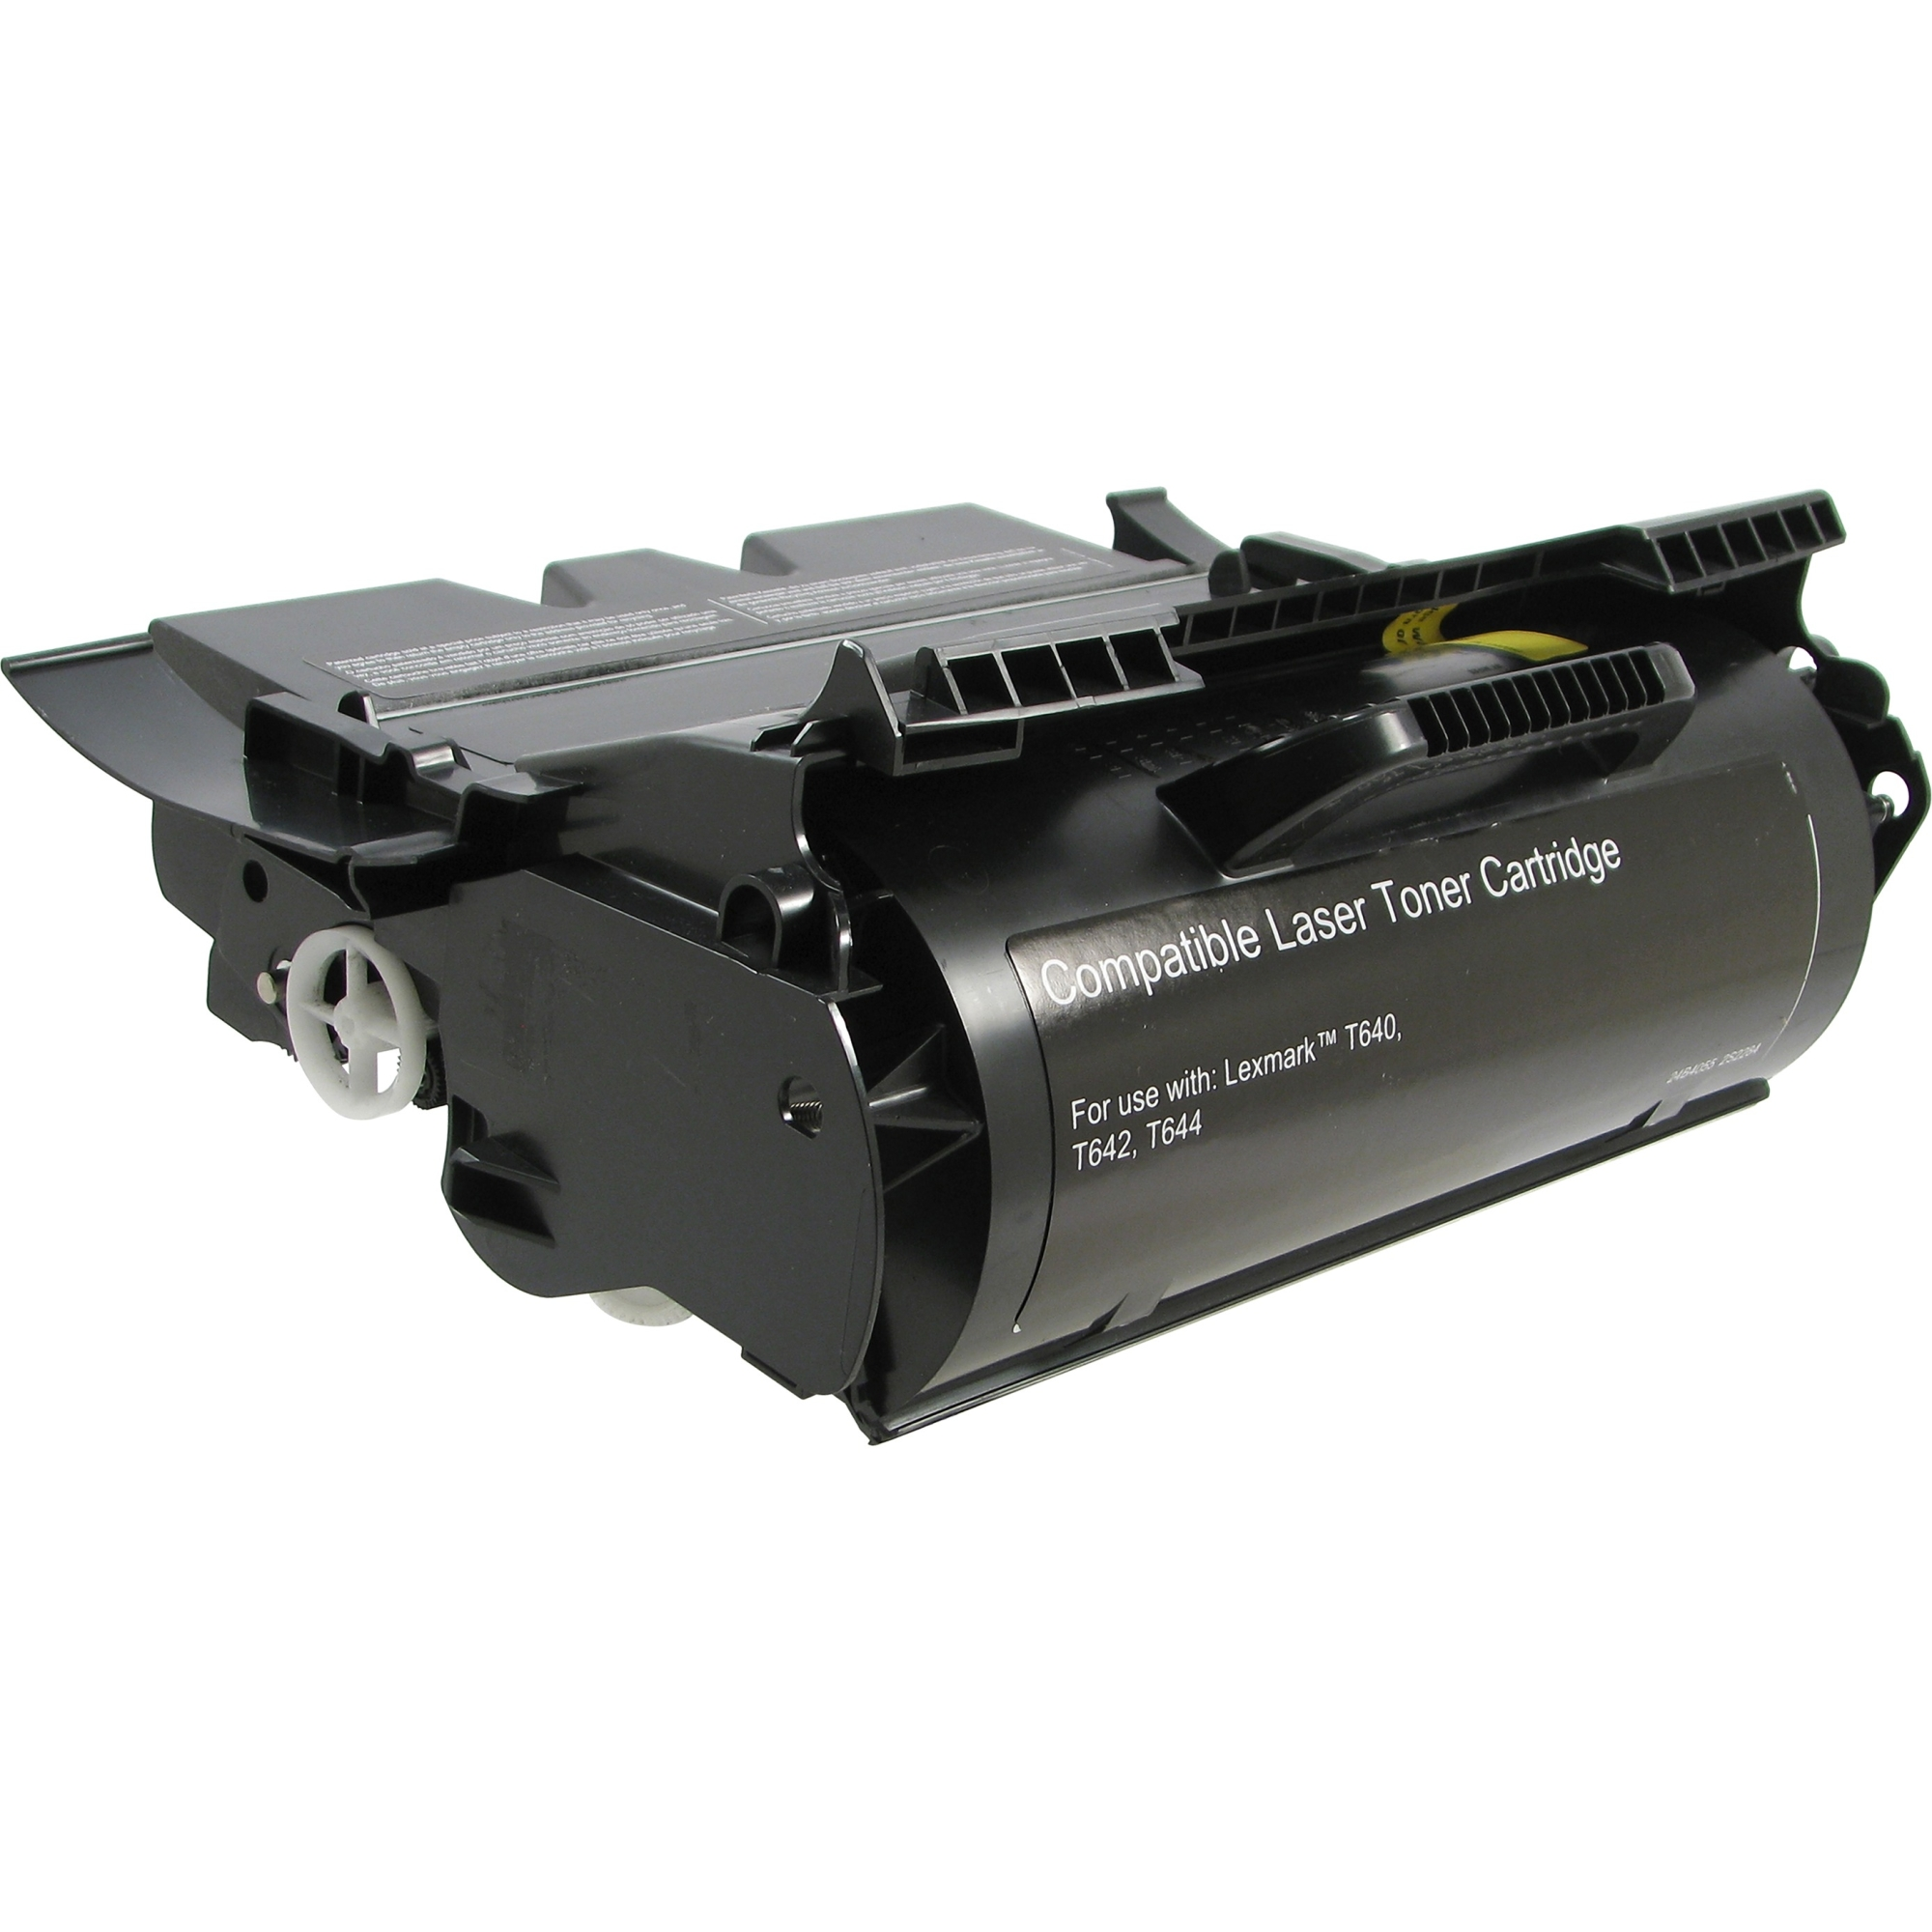 Black Toner Cartridge - Laser - 21000 Page - Black - 1